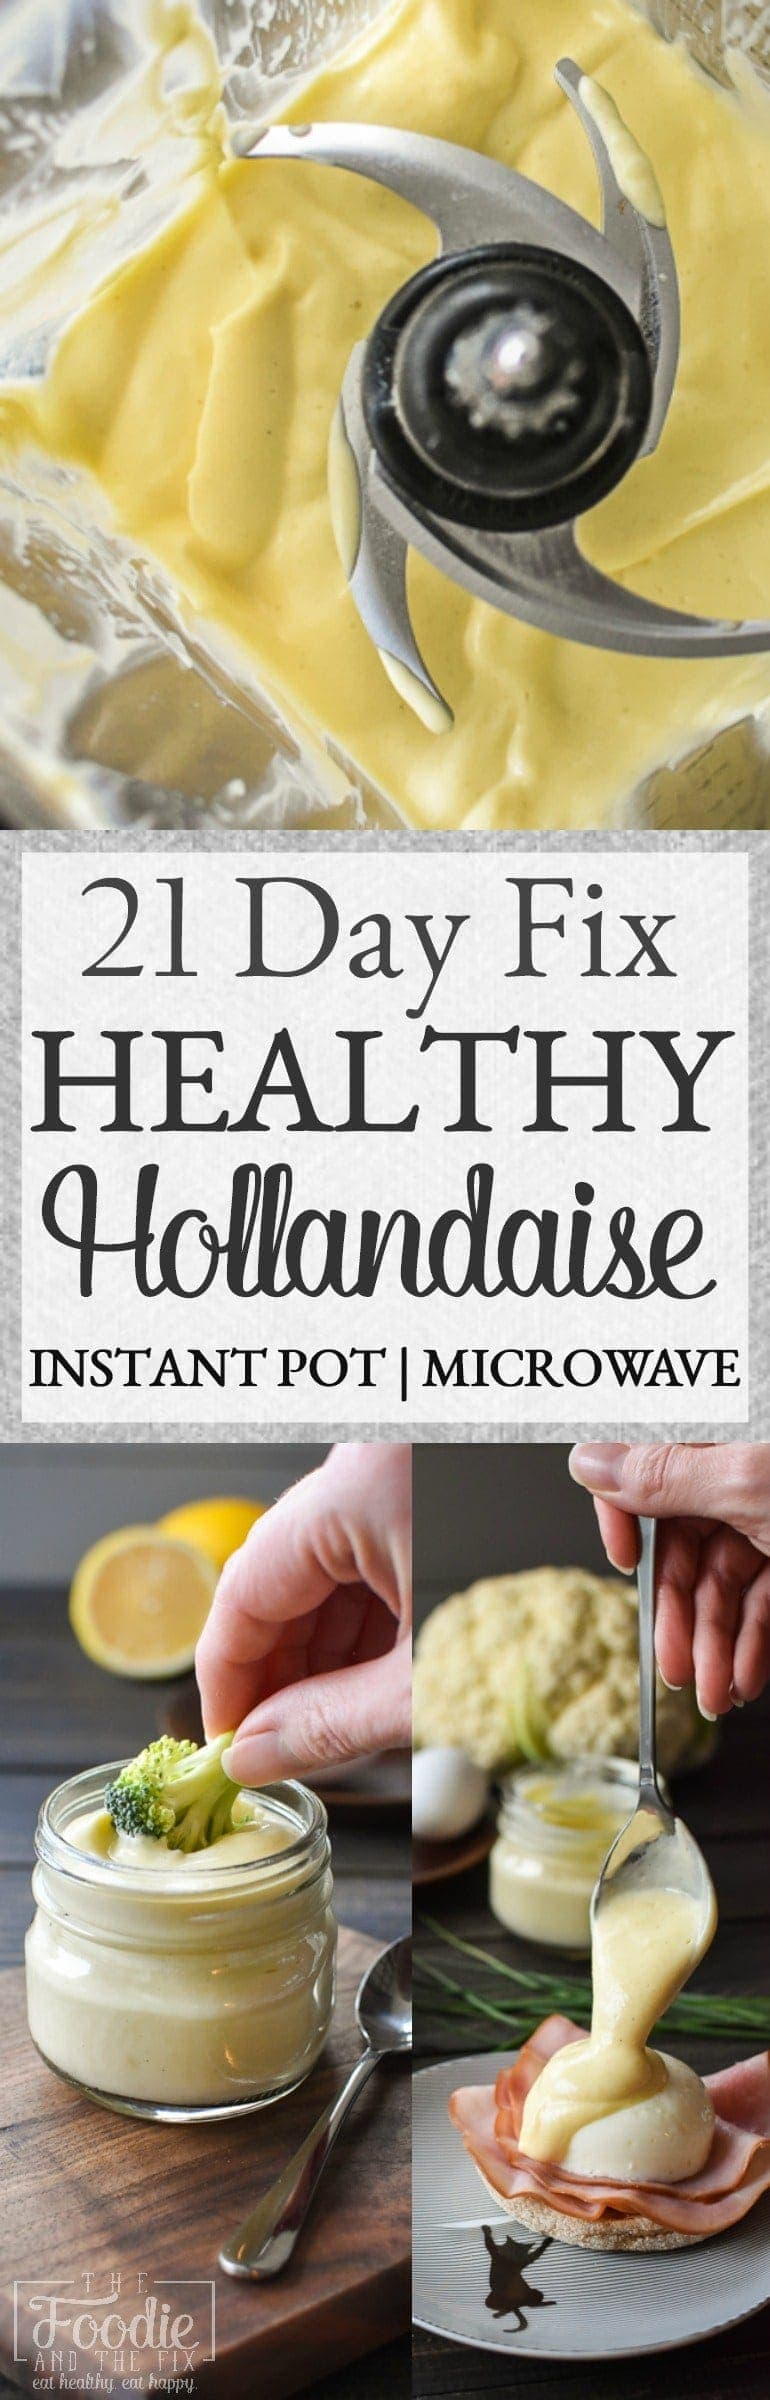 This easy, healthy hollandaise sauce recipe uses a secret ingredient to cut the calories and fat while keeping all of the silky rich deliciousness. It's great with eggs for breakfast AND to go with veggies! #21dayfix #instantpot #healthy #kidfriendly #glutenfree #breakfast #veggies #makeahead #mealprep